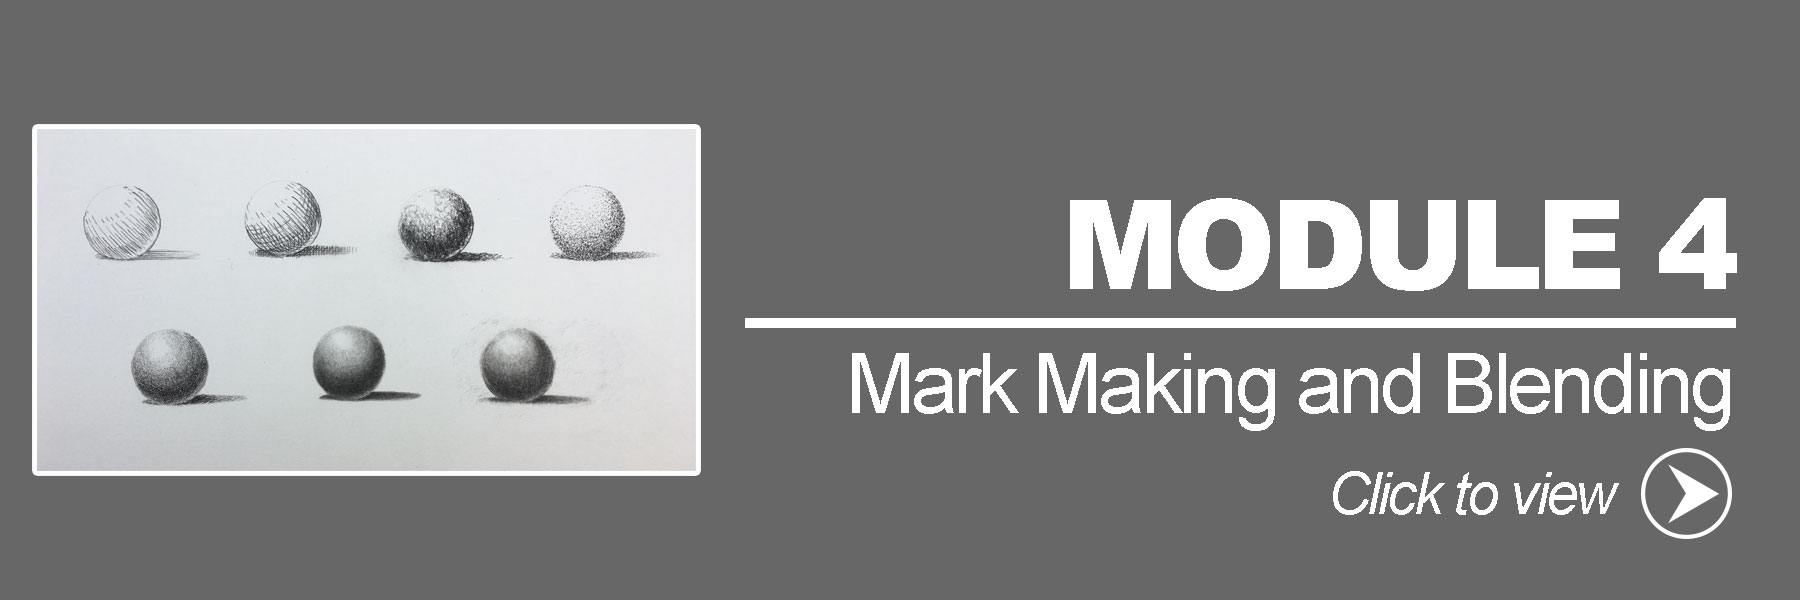 Mark Making and Blending